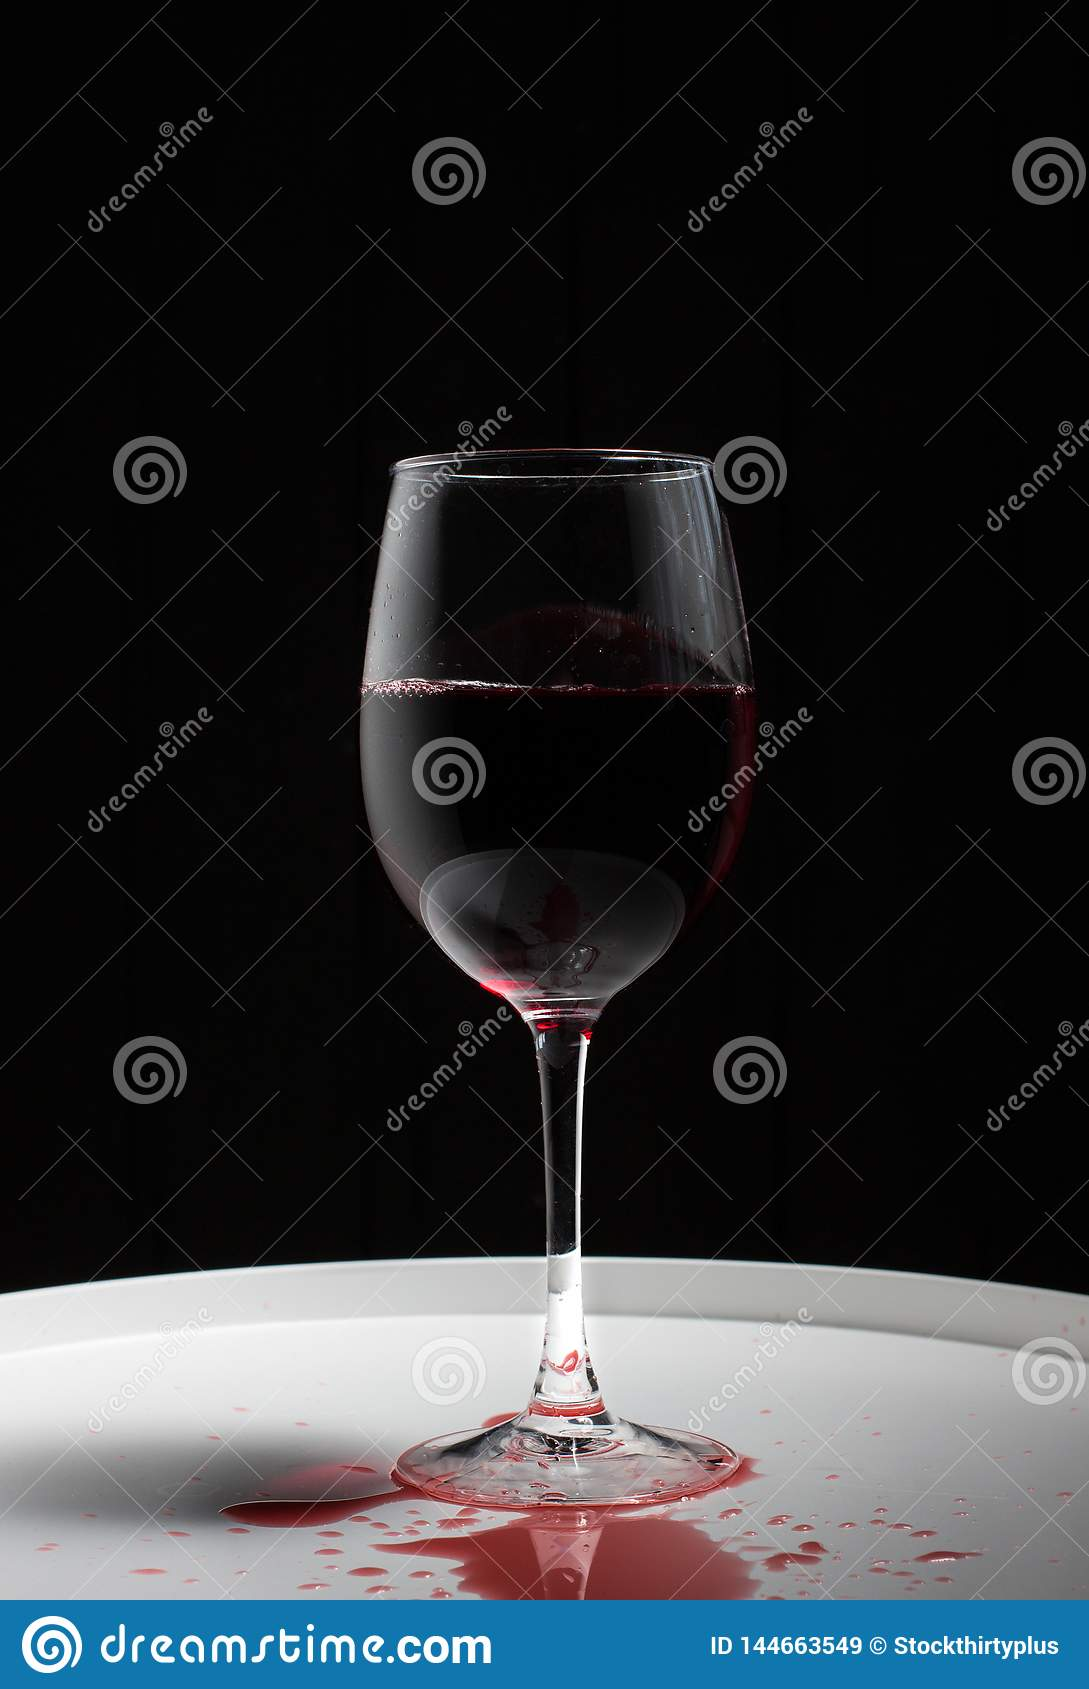 Wineglass with red wine on a white table